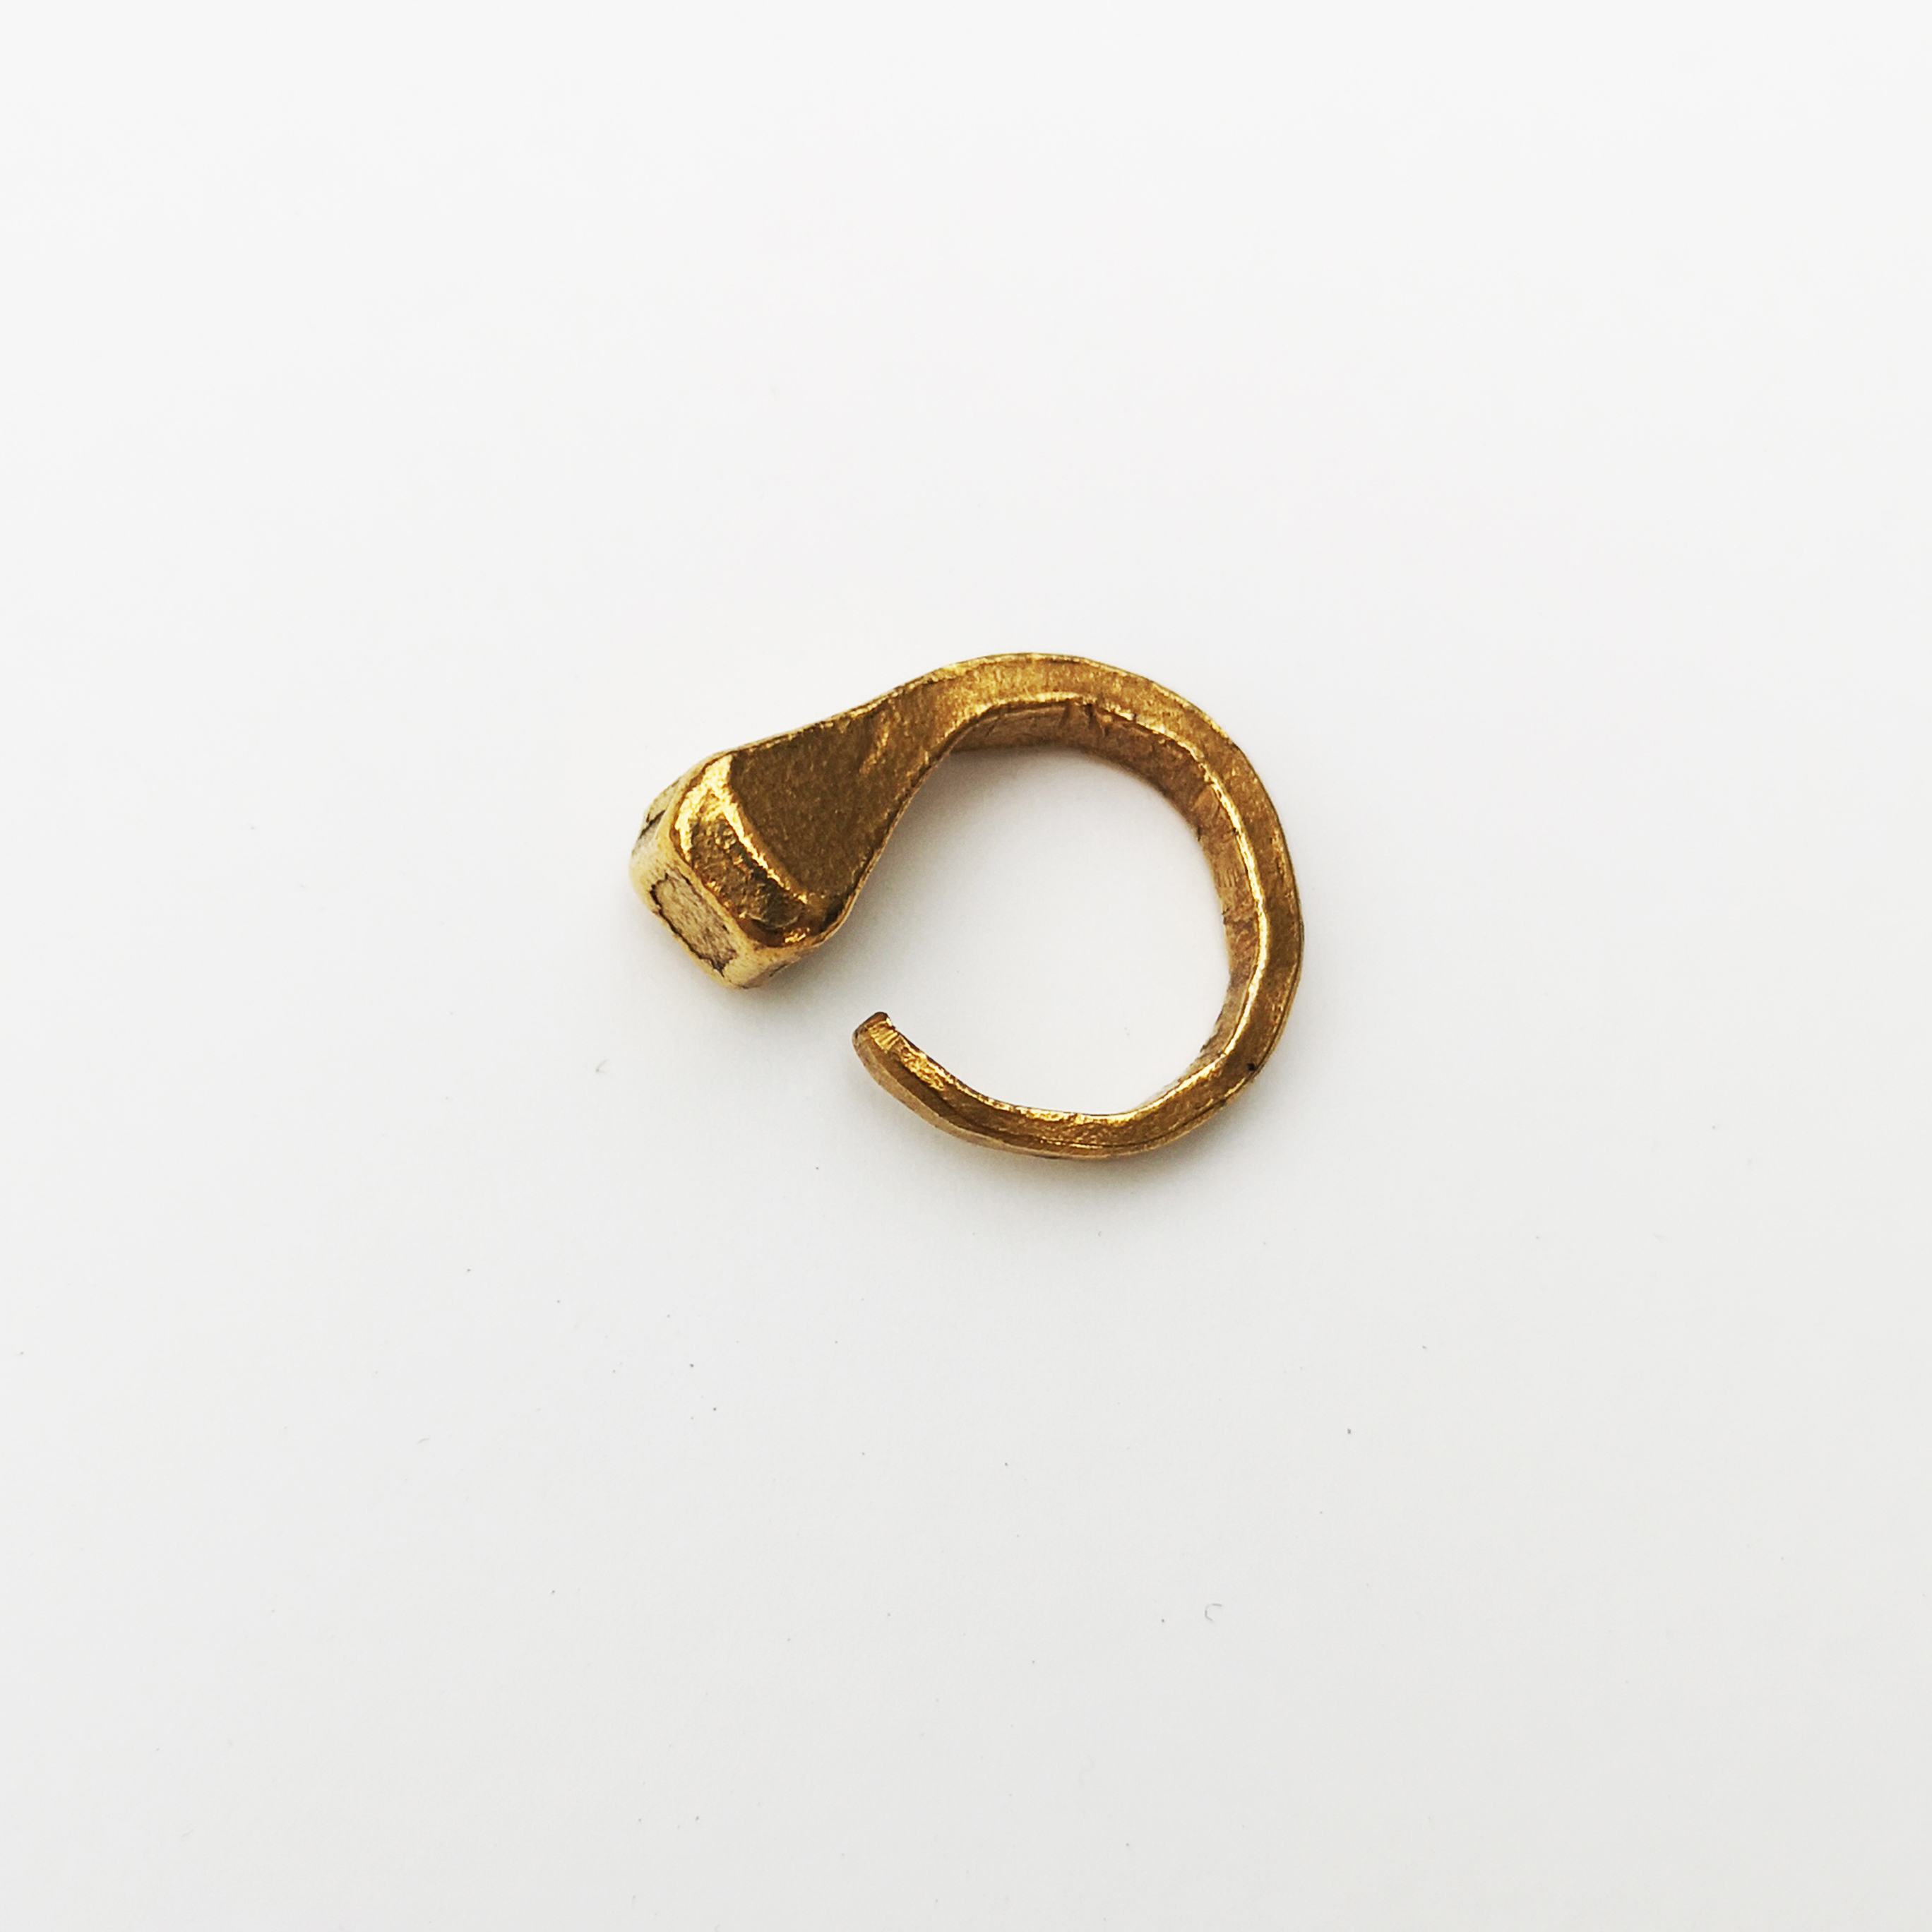 HORSE NAIL RING / 925 Sterling Silver plated in 23K Gold